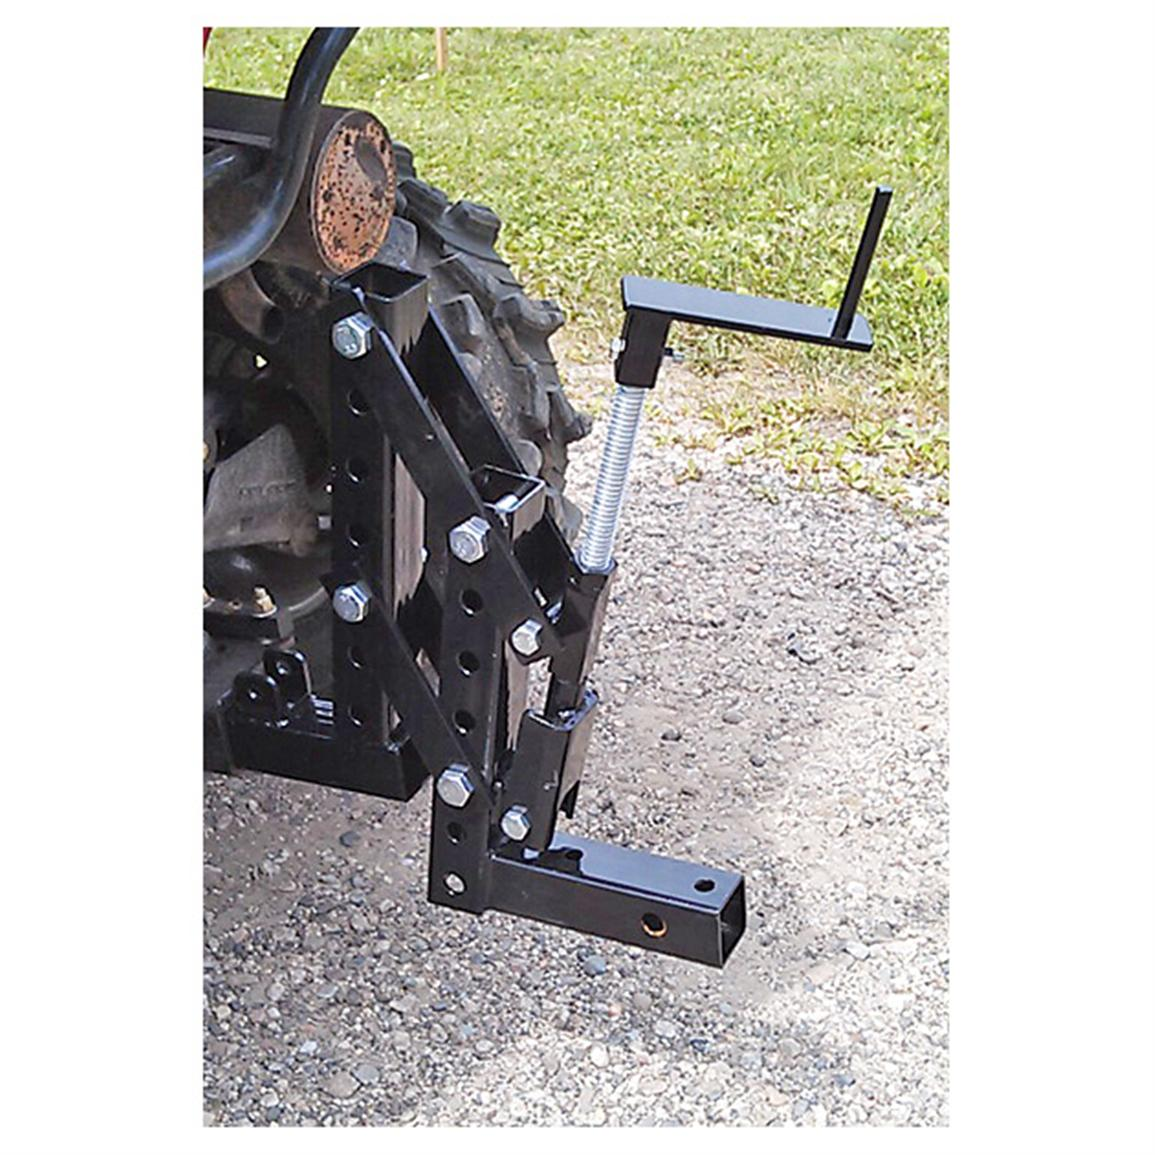 Impact Implements ATV / UTV 1-point Lift System; Lots of height adjustment options